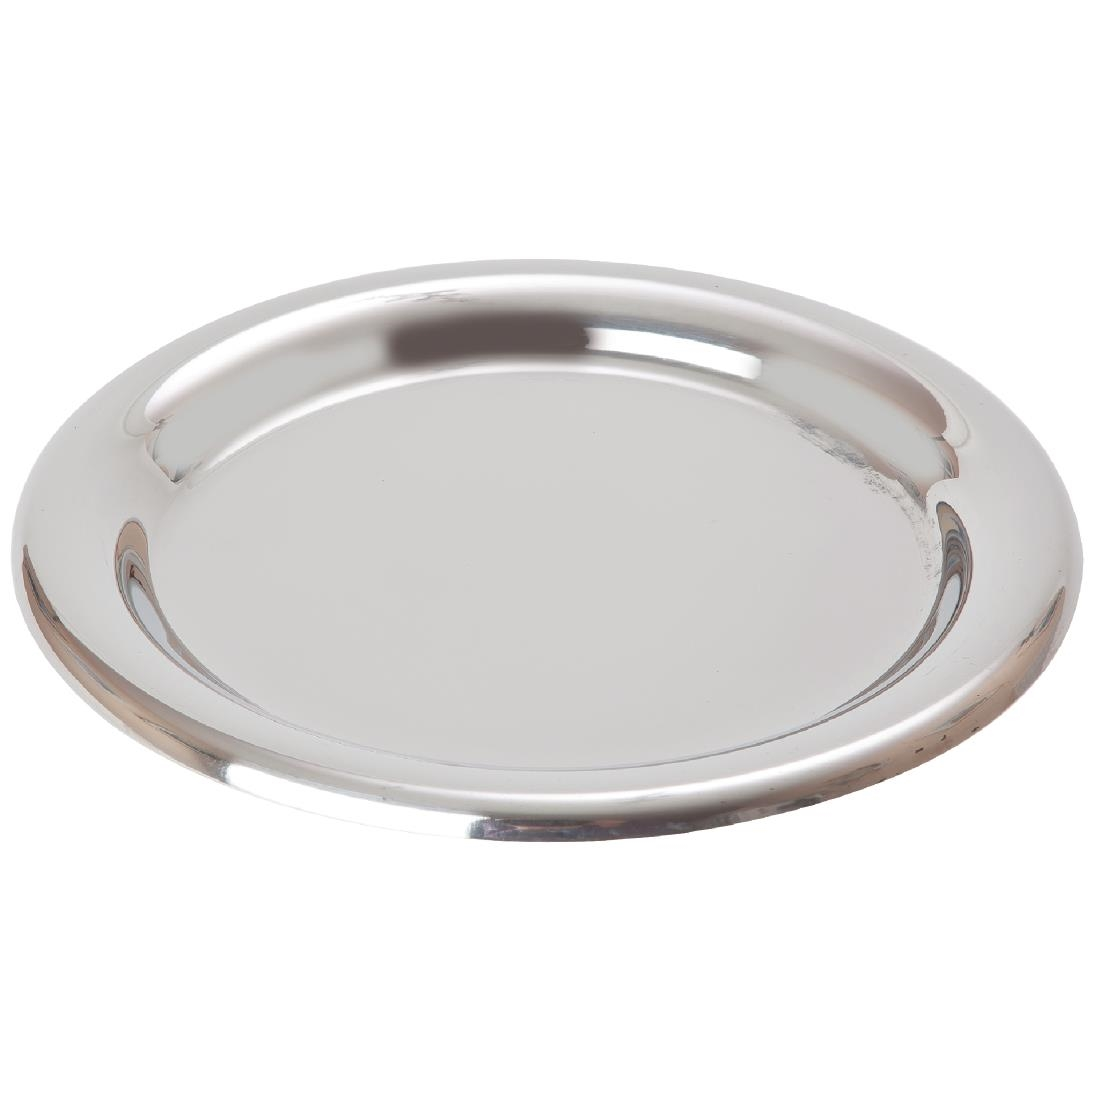 Image of Beaumont Stainless Steel Tip Tray